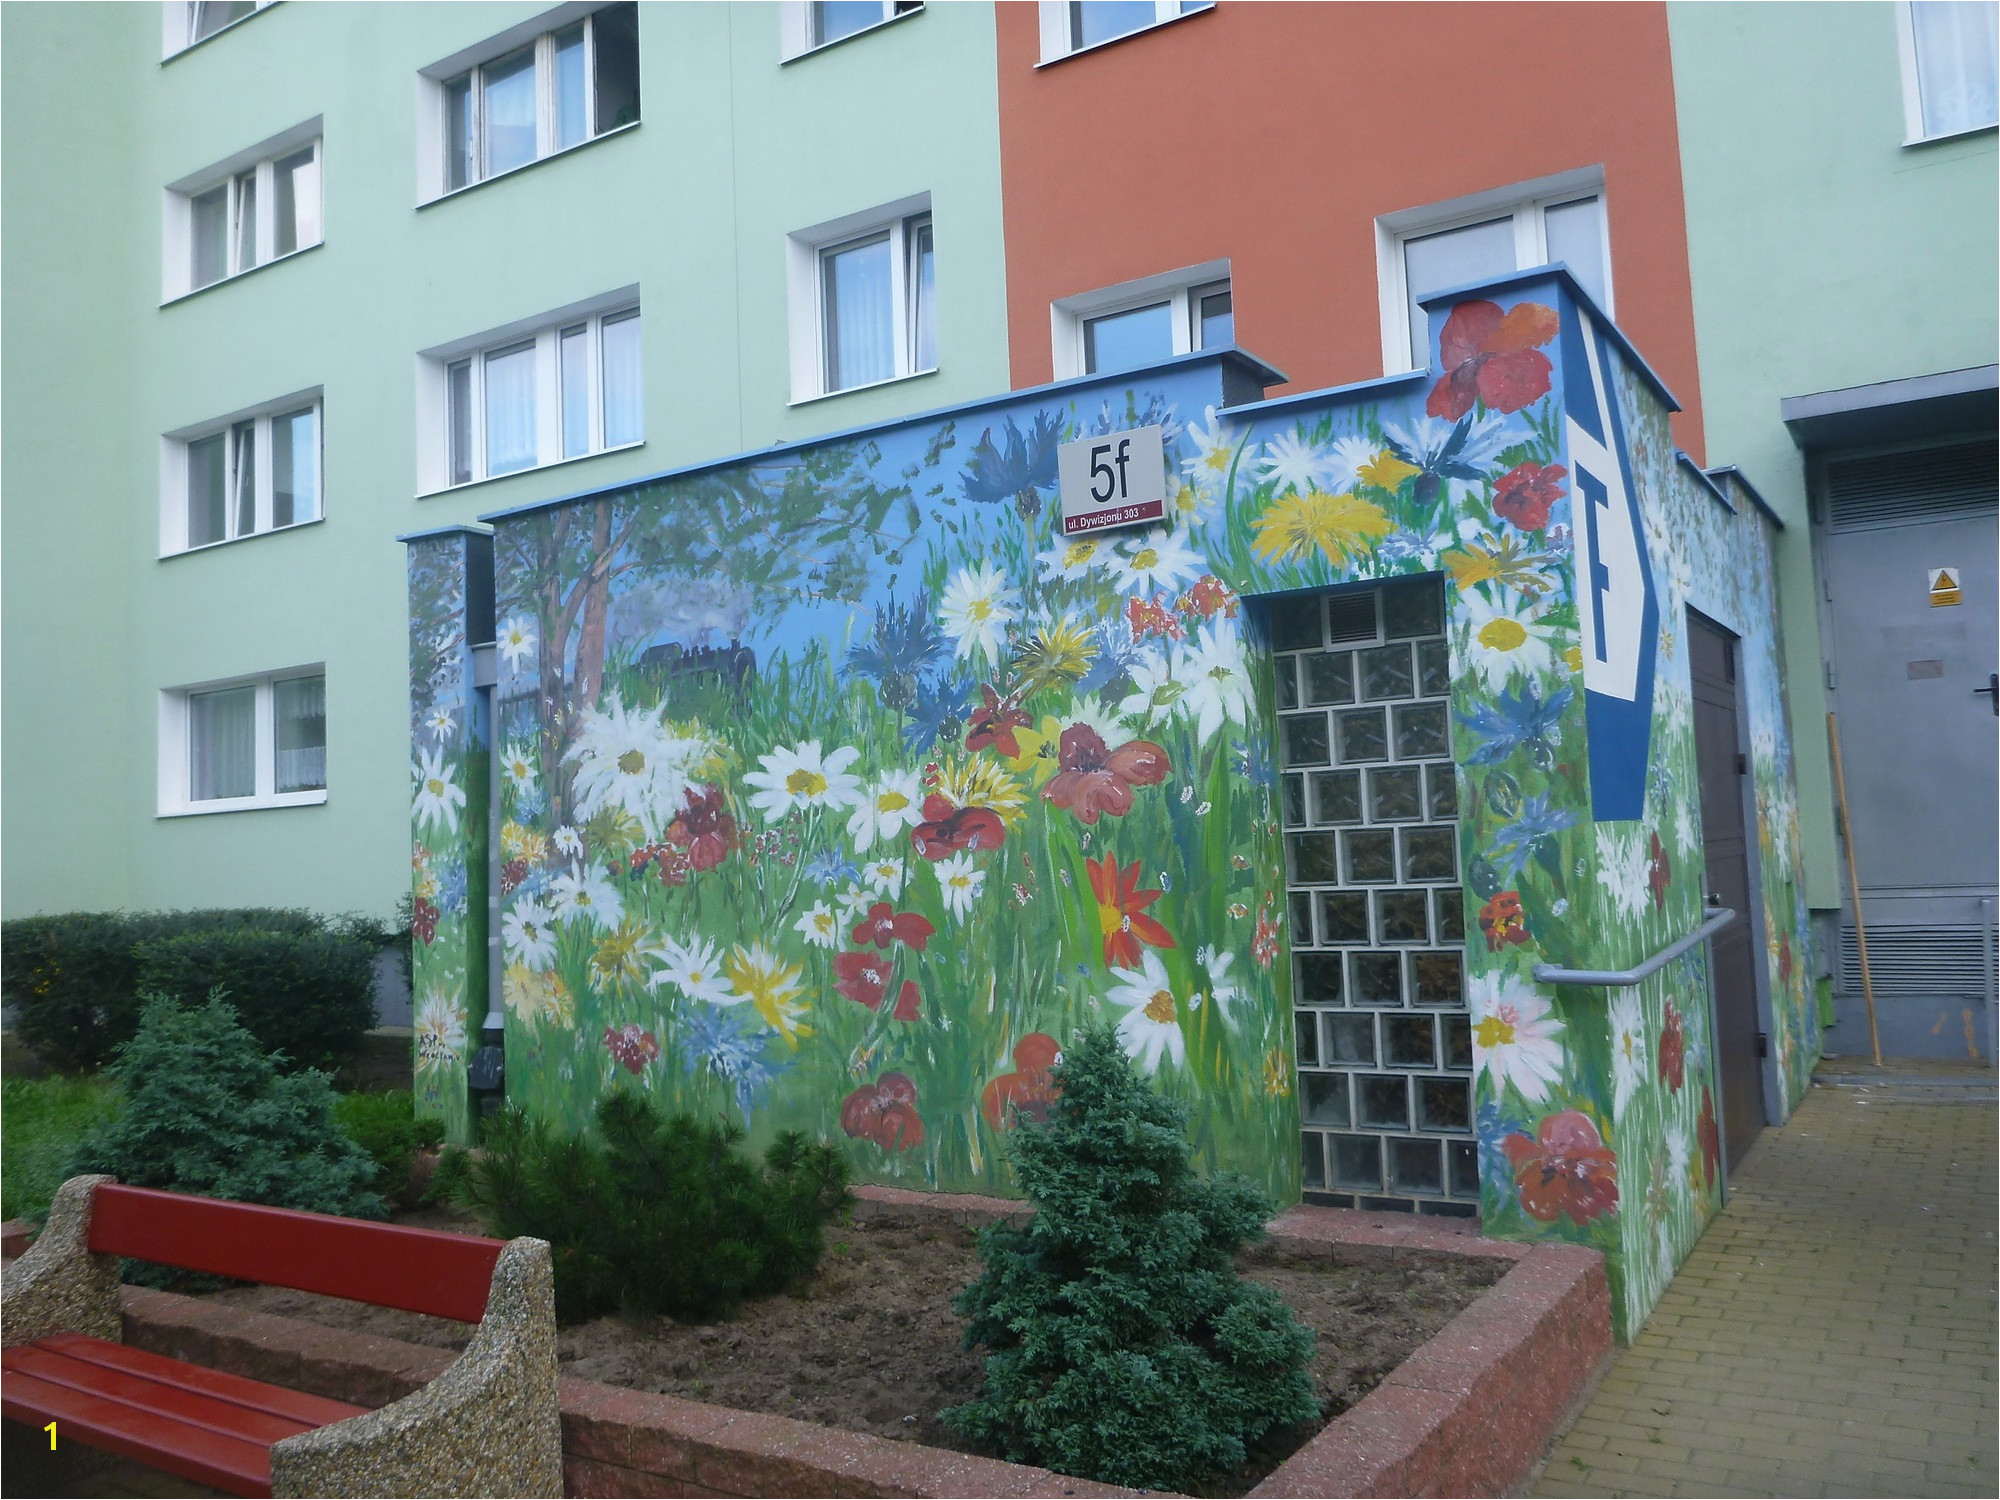 Touring the Artistic Walls Murals in the District of Zaspa Gdańsk Poland